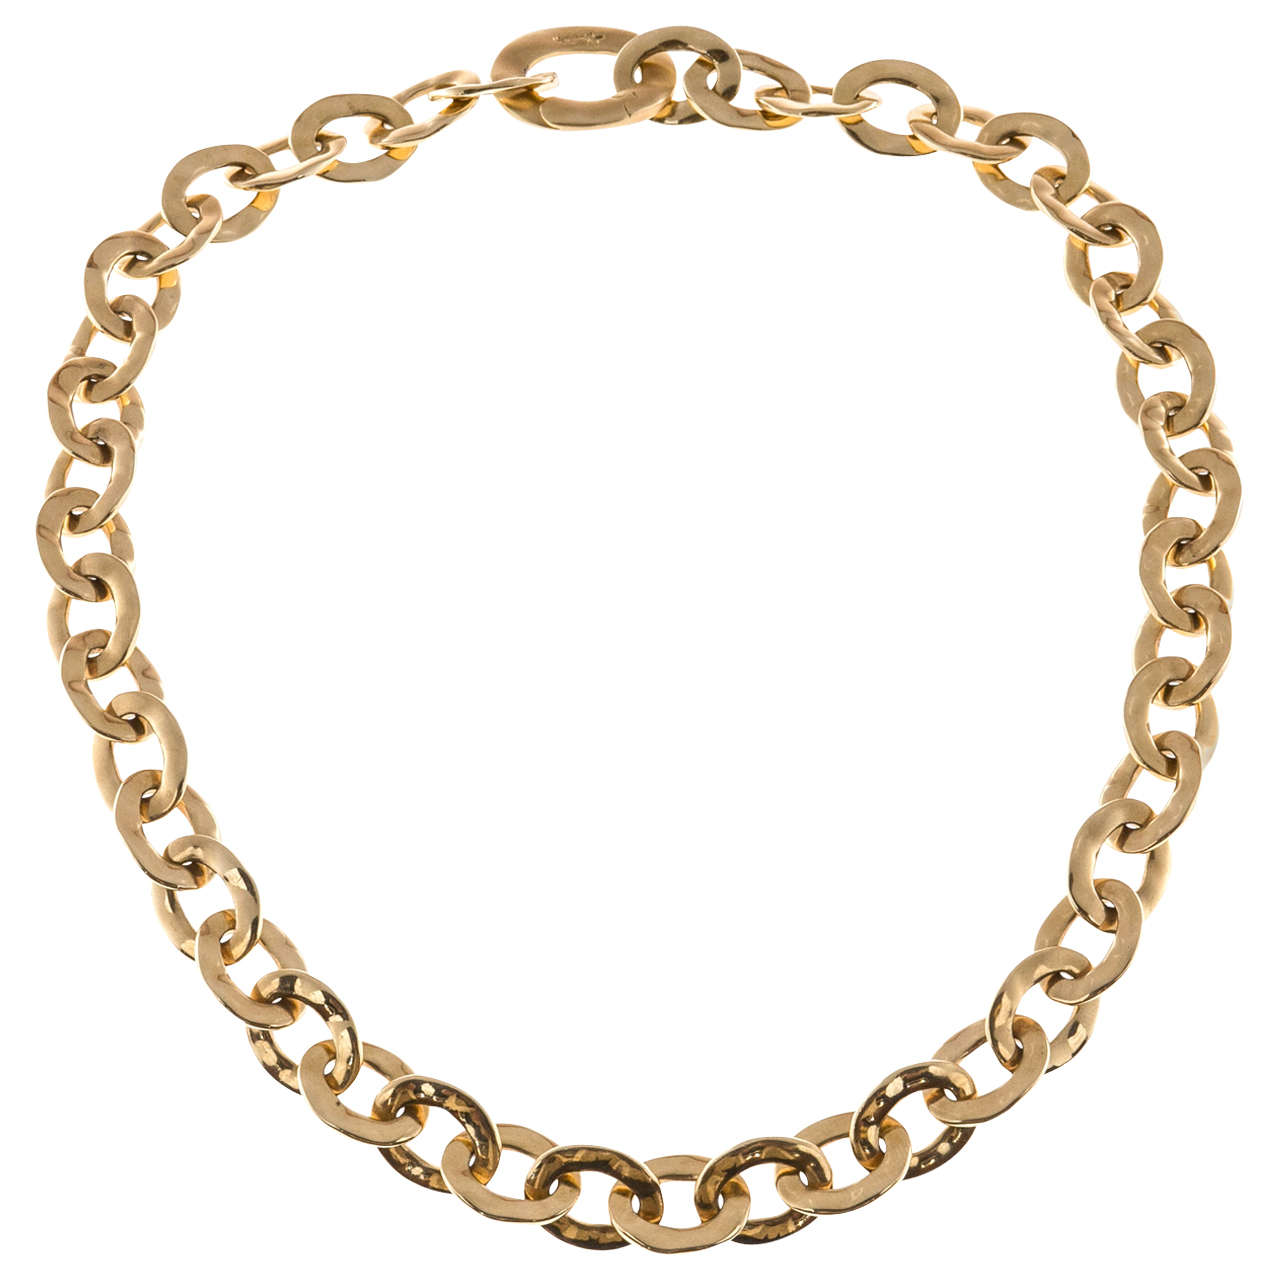 Pomellato Graduated Oval Link Yellow Gold Necklace